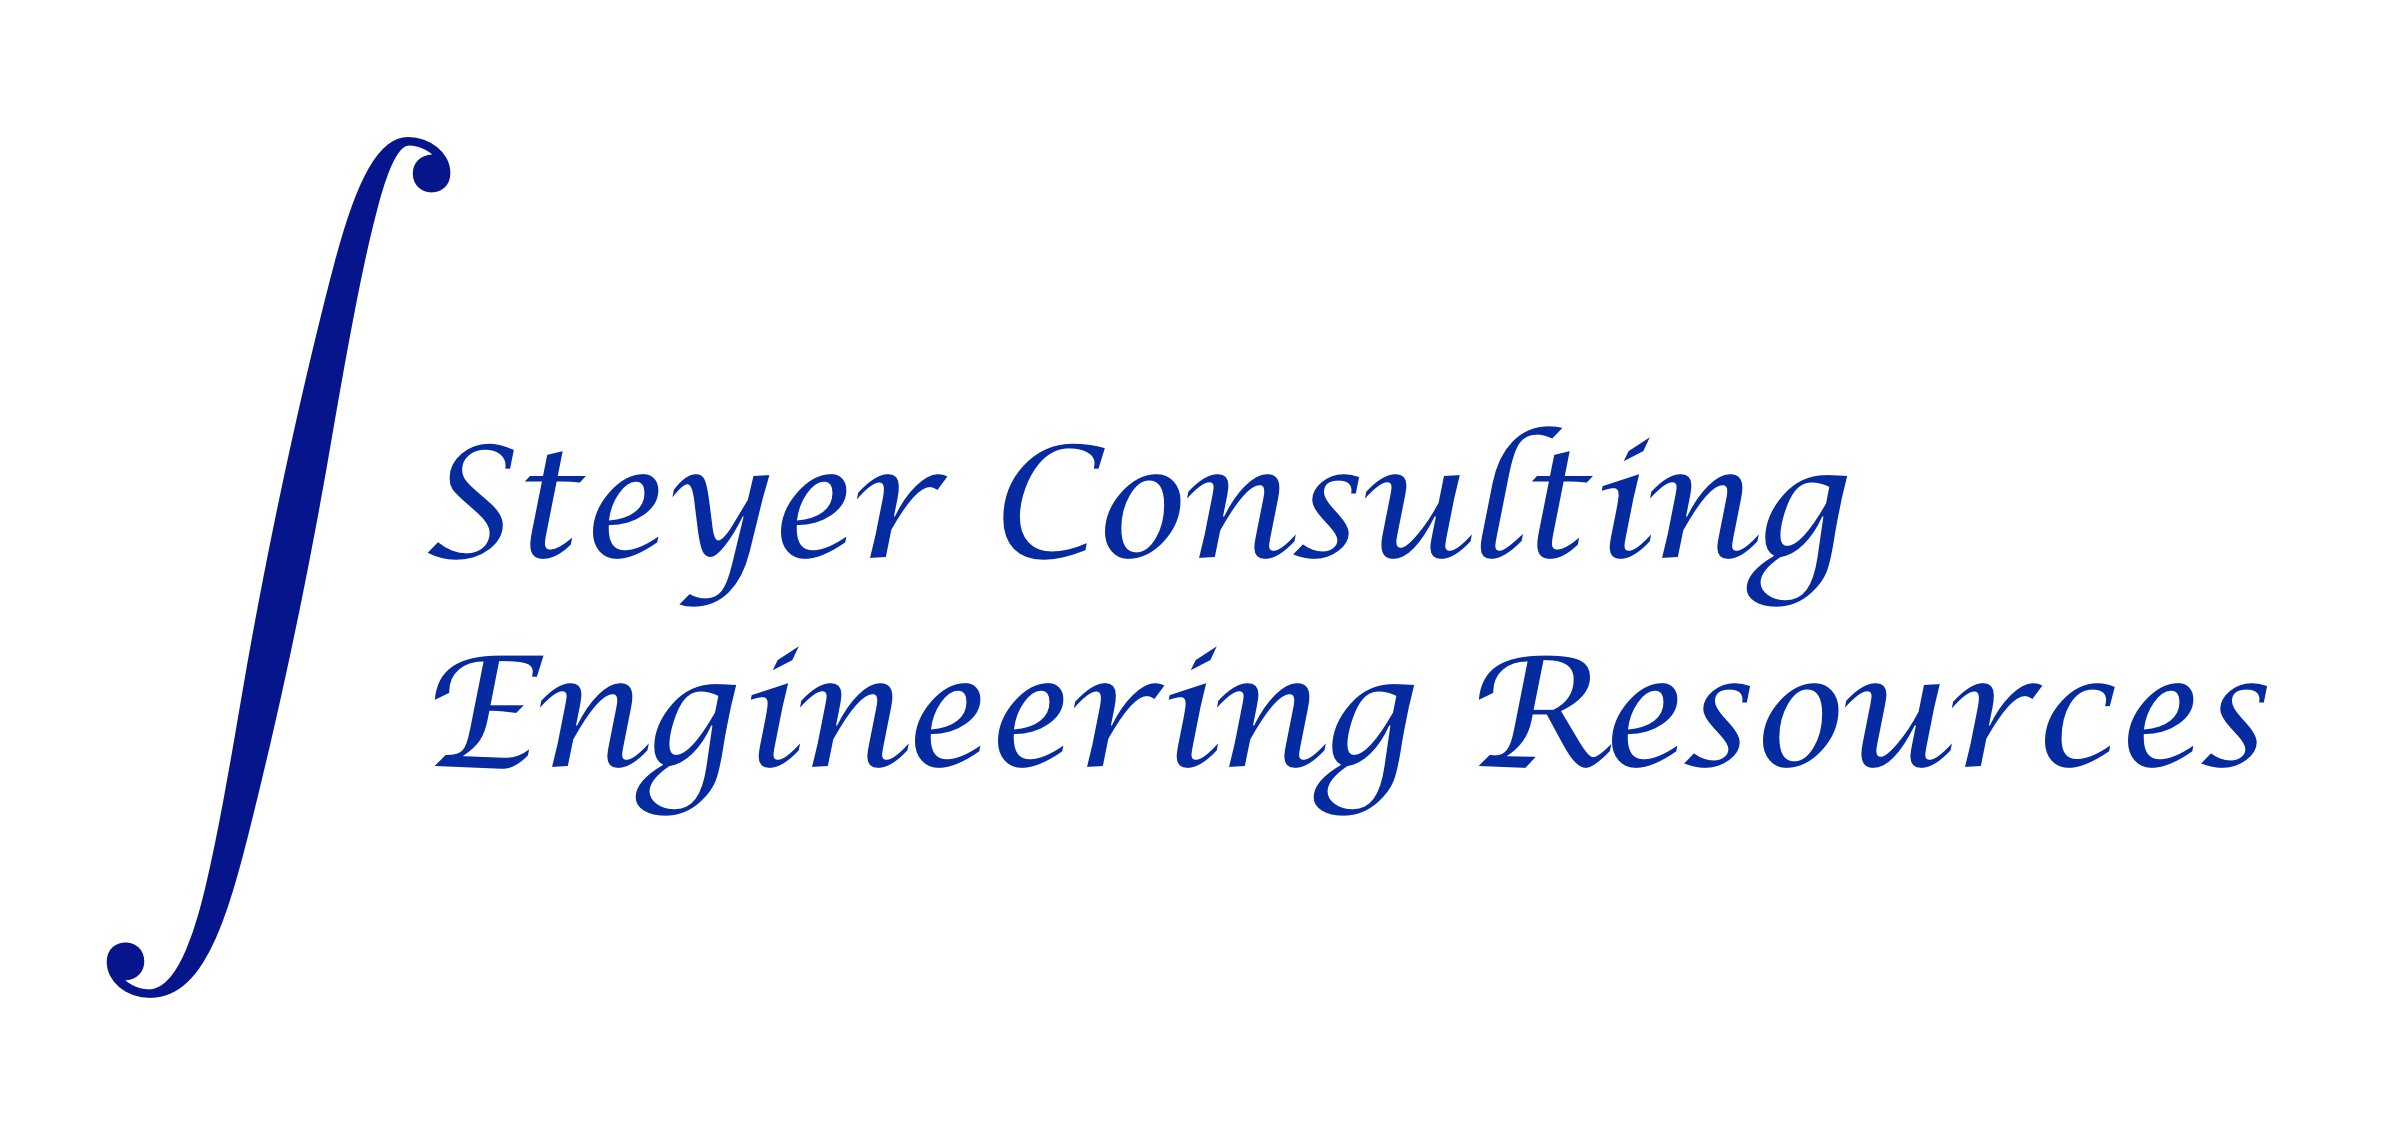 Steyer Consulting Engineering Resources